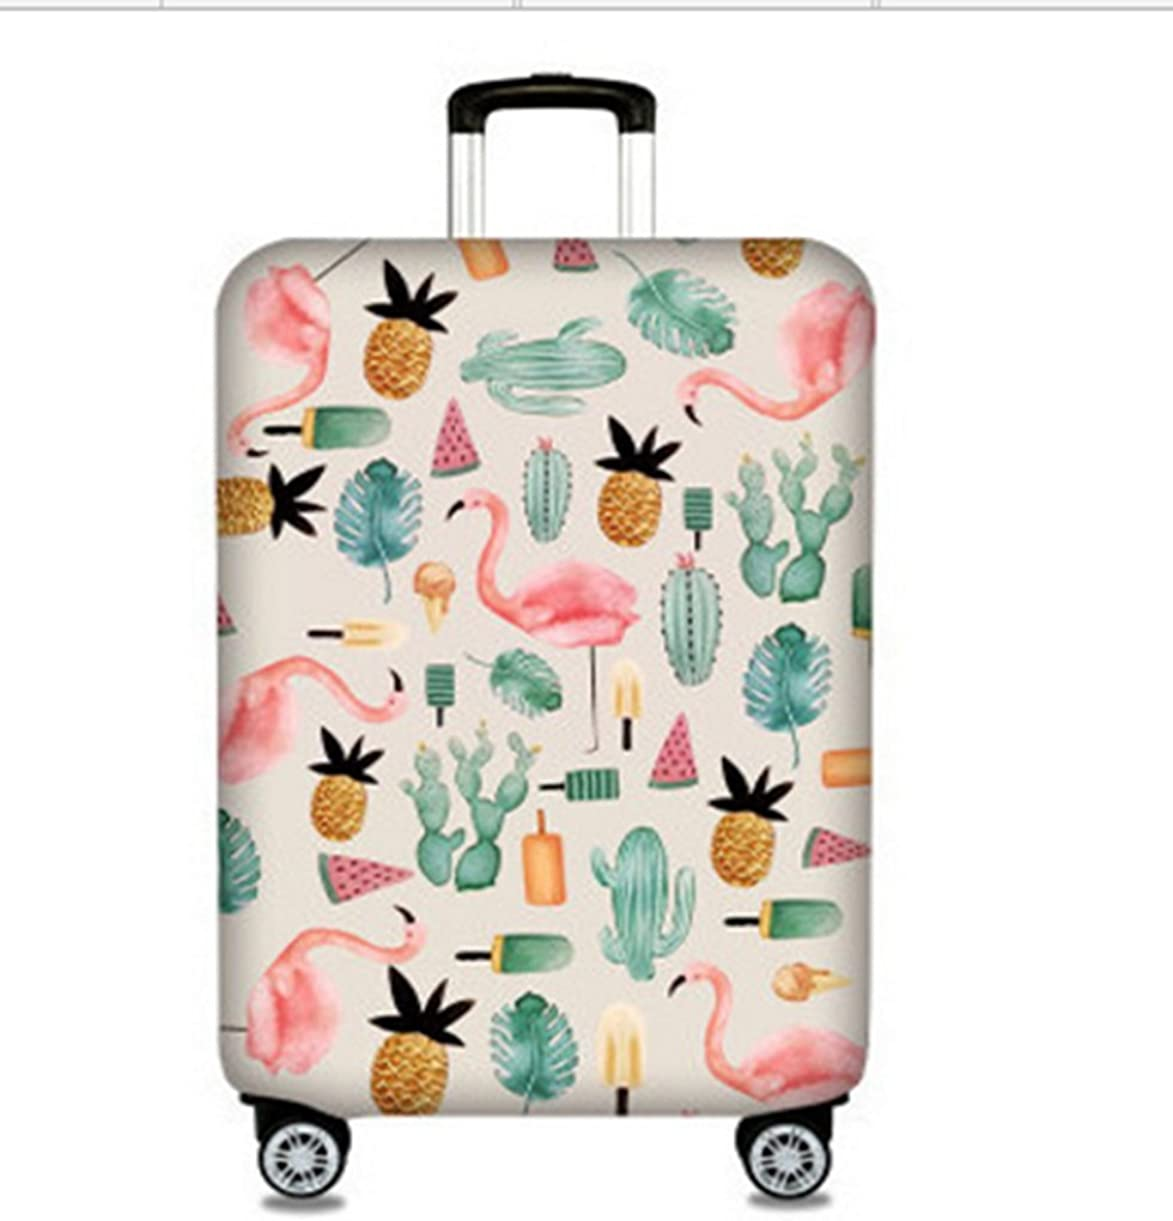 Fits 18-32 Inch Luggage PINGJING Flamingo Travel Luggage Cover Dust-proof Case